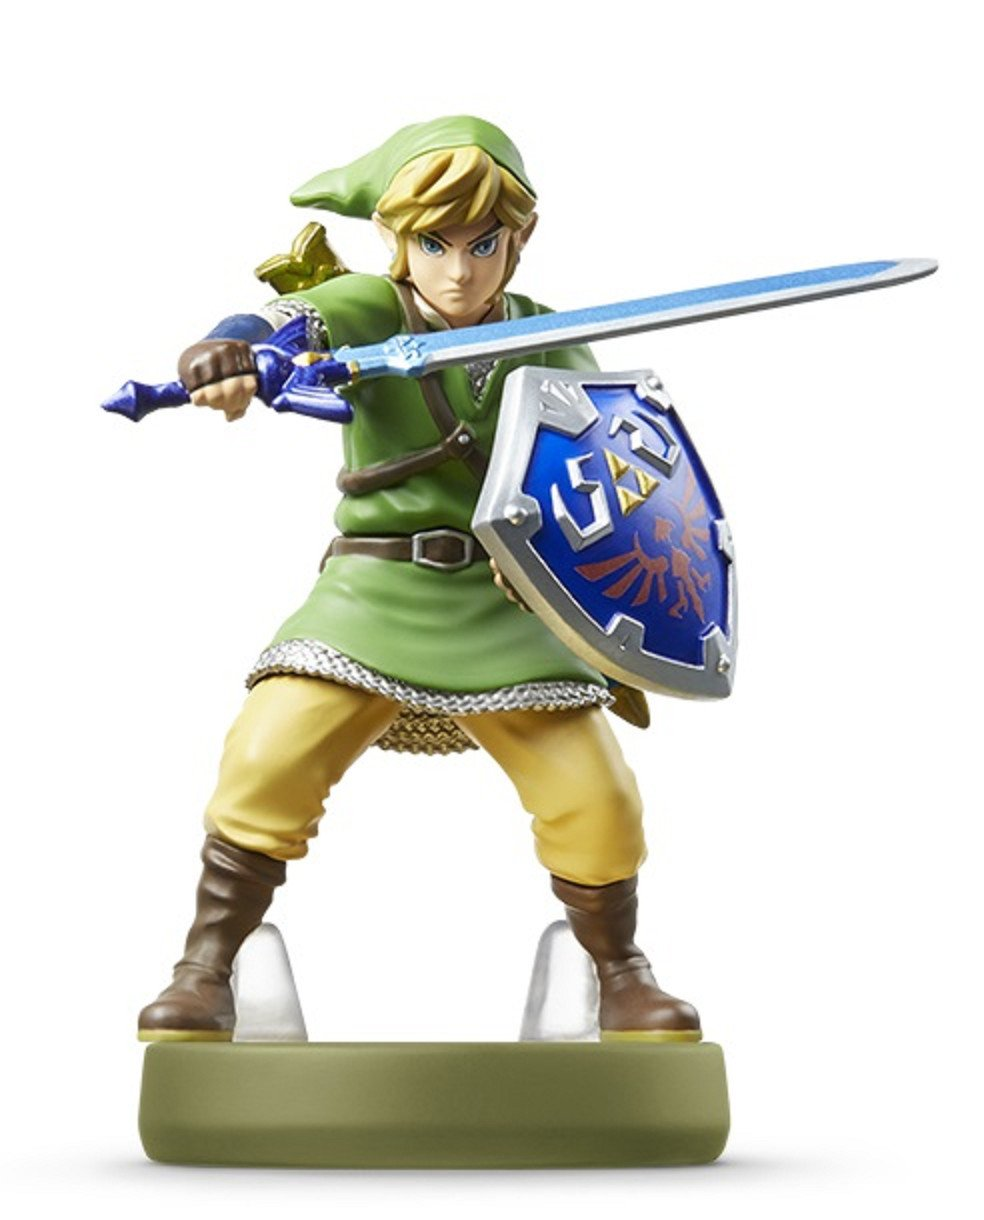 Nintendo amiibo Link - skyward sword (Series : The legend of Zelda) Japan Import by Nintendo